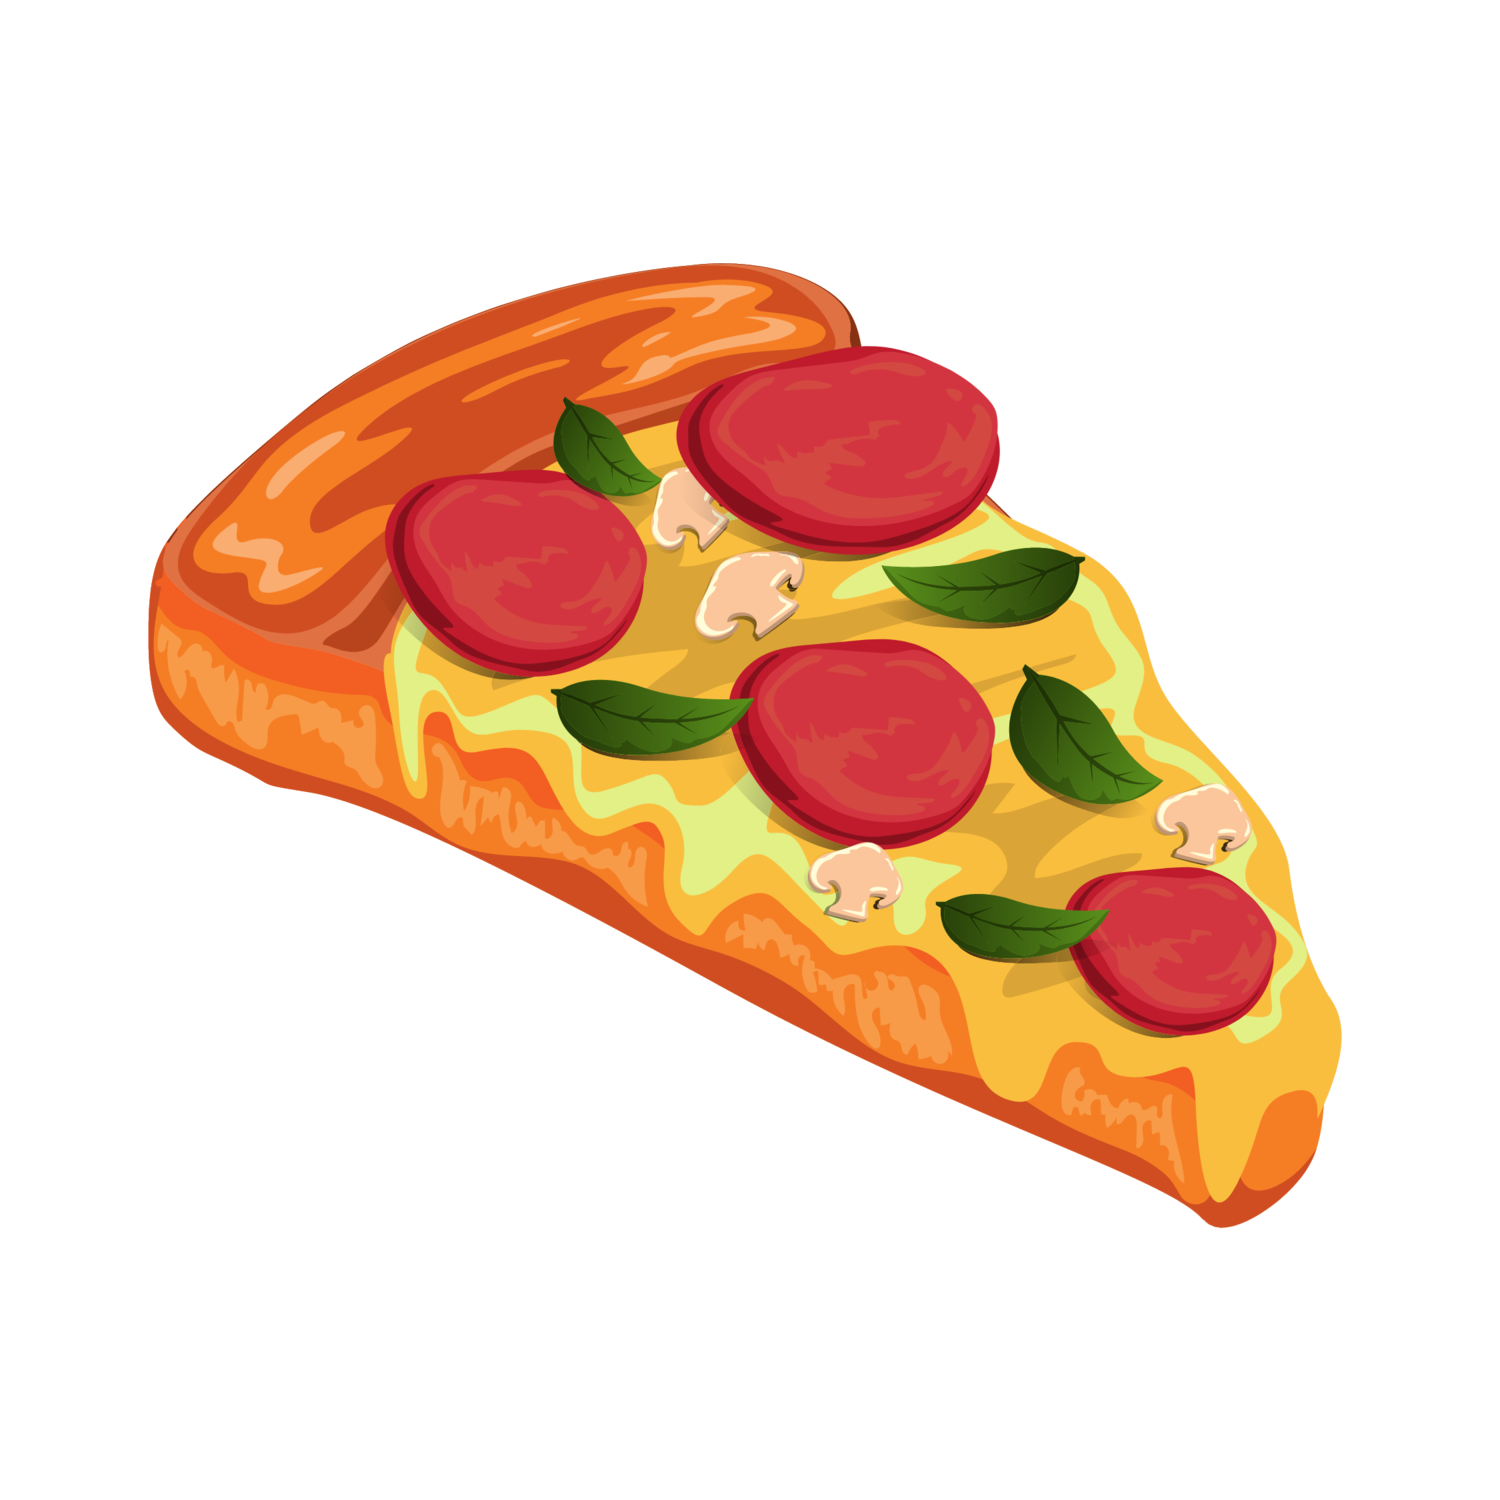 Pizza (Slice)